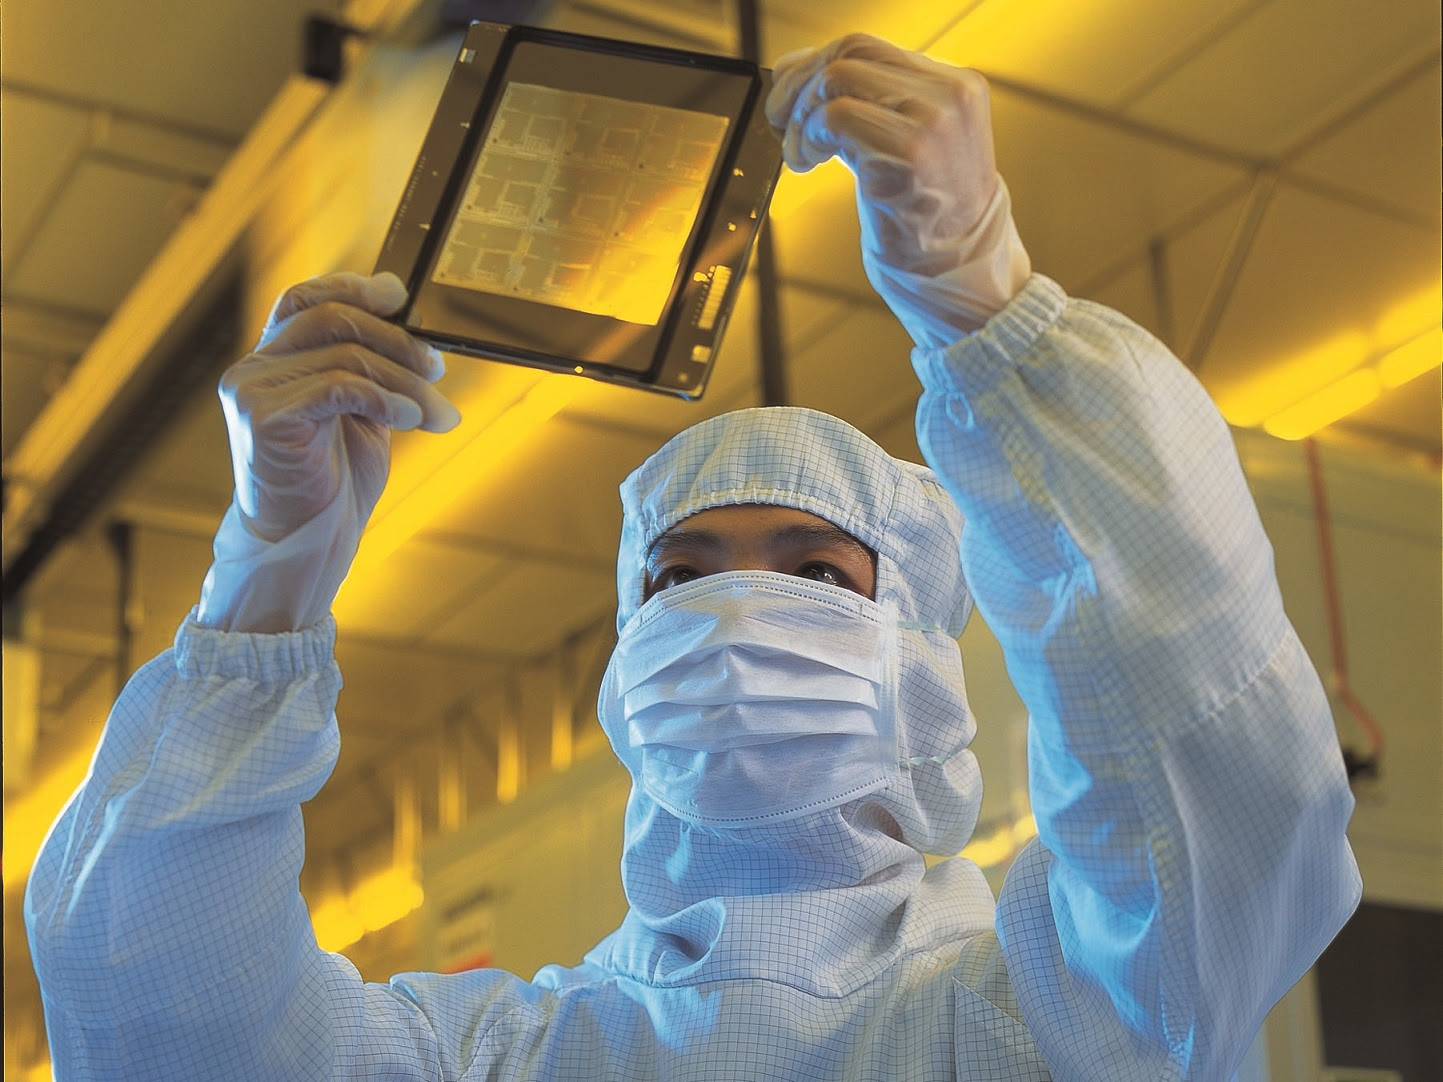 TSMC Already Working on 5nm, 3nm, and Planning 2nm Process ...